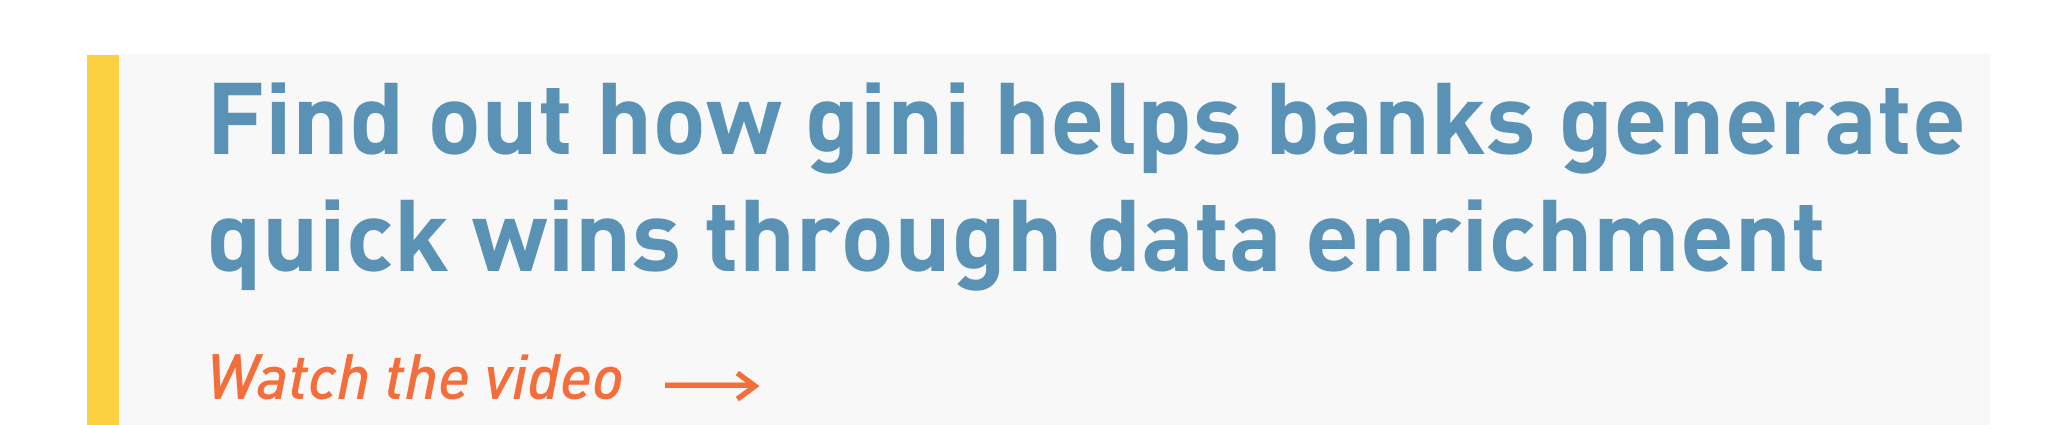 Find out how gini helps bank generate quick wins through data enrichment | Watch the video